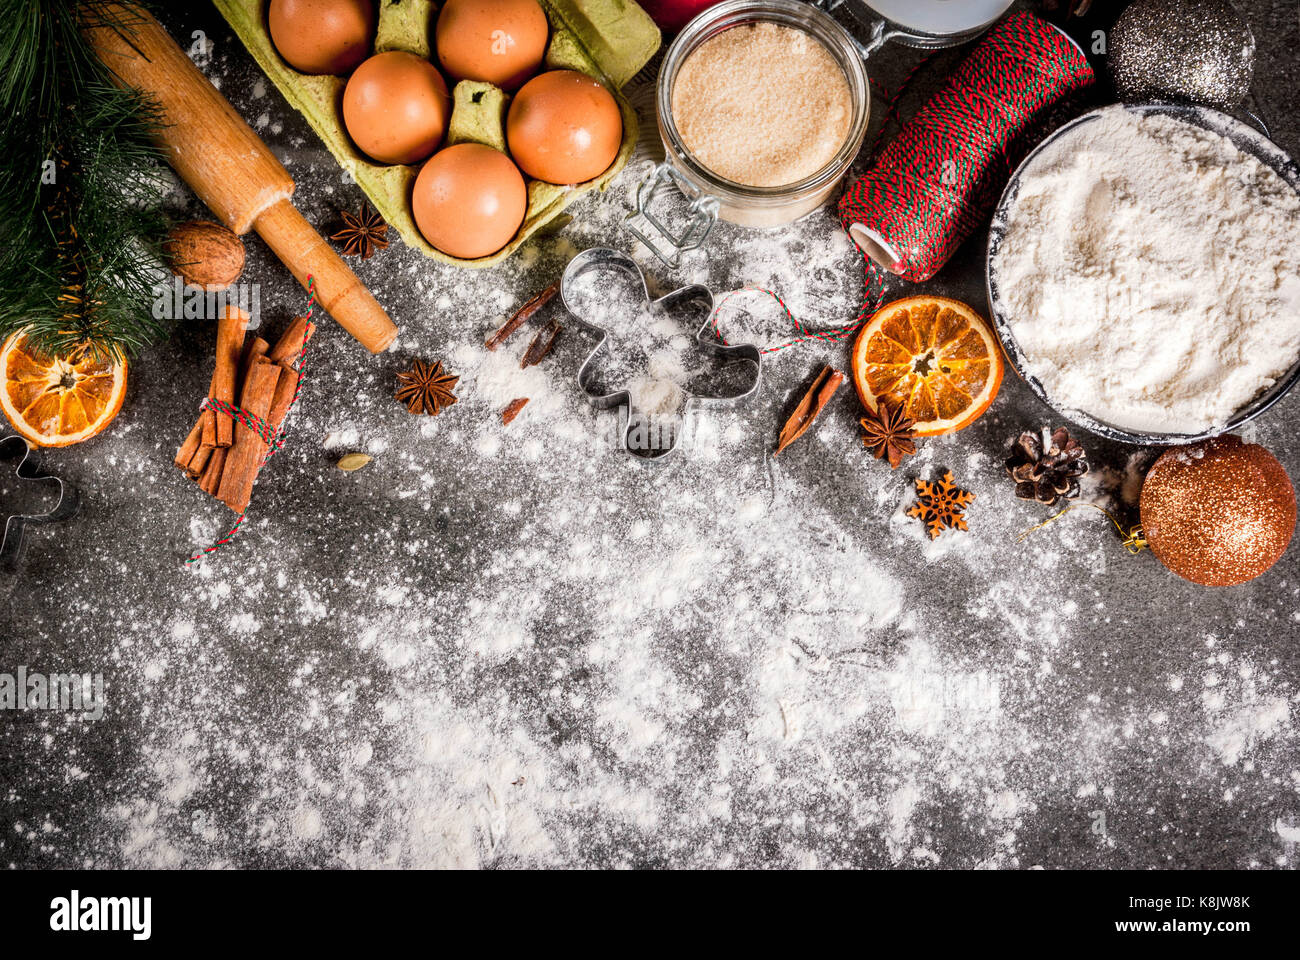 Mold sticks stock photos mold sticks stock images alamy for Baking oranges for christmas decoration